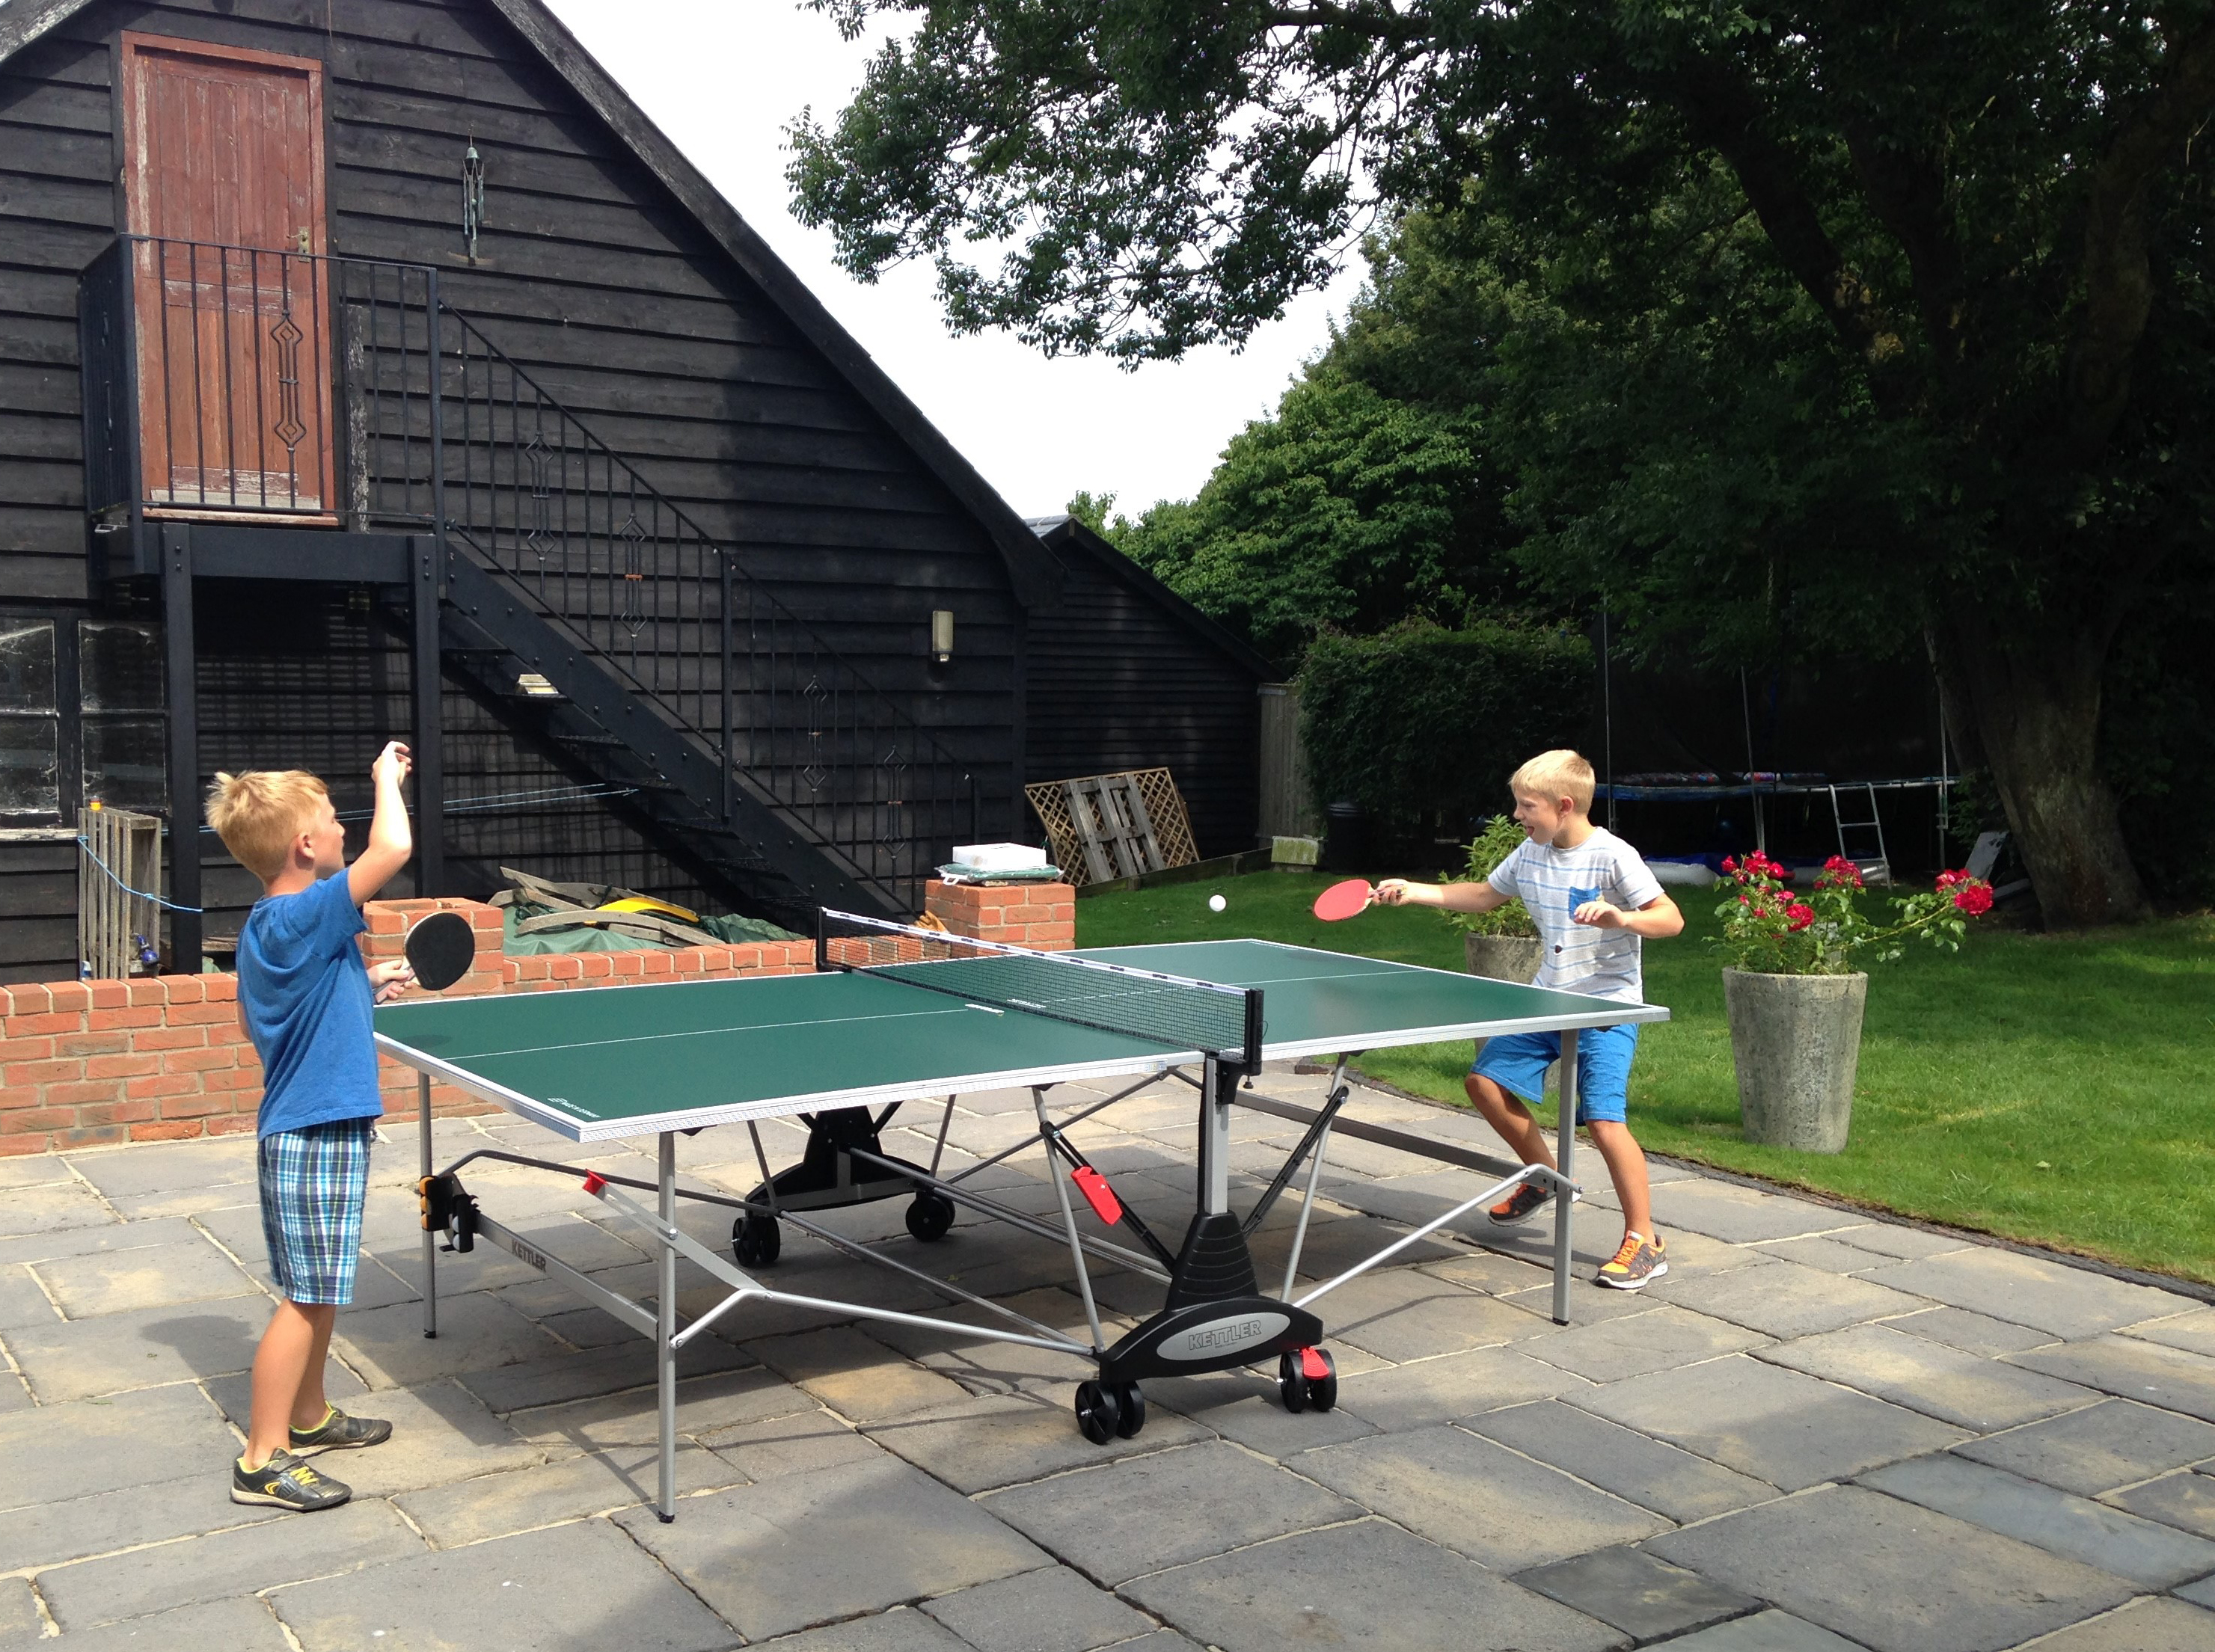 Customers Share the Pictures of Their Table Tennis Fun 822660c897c8